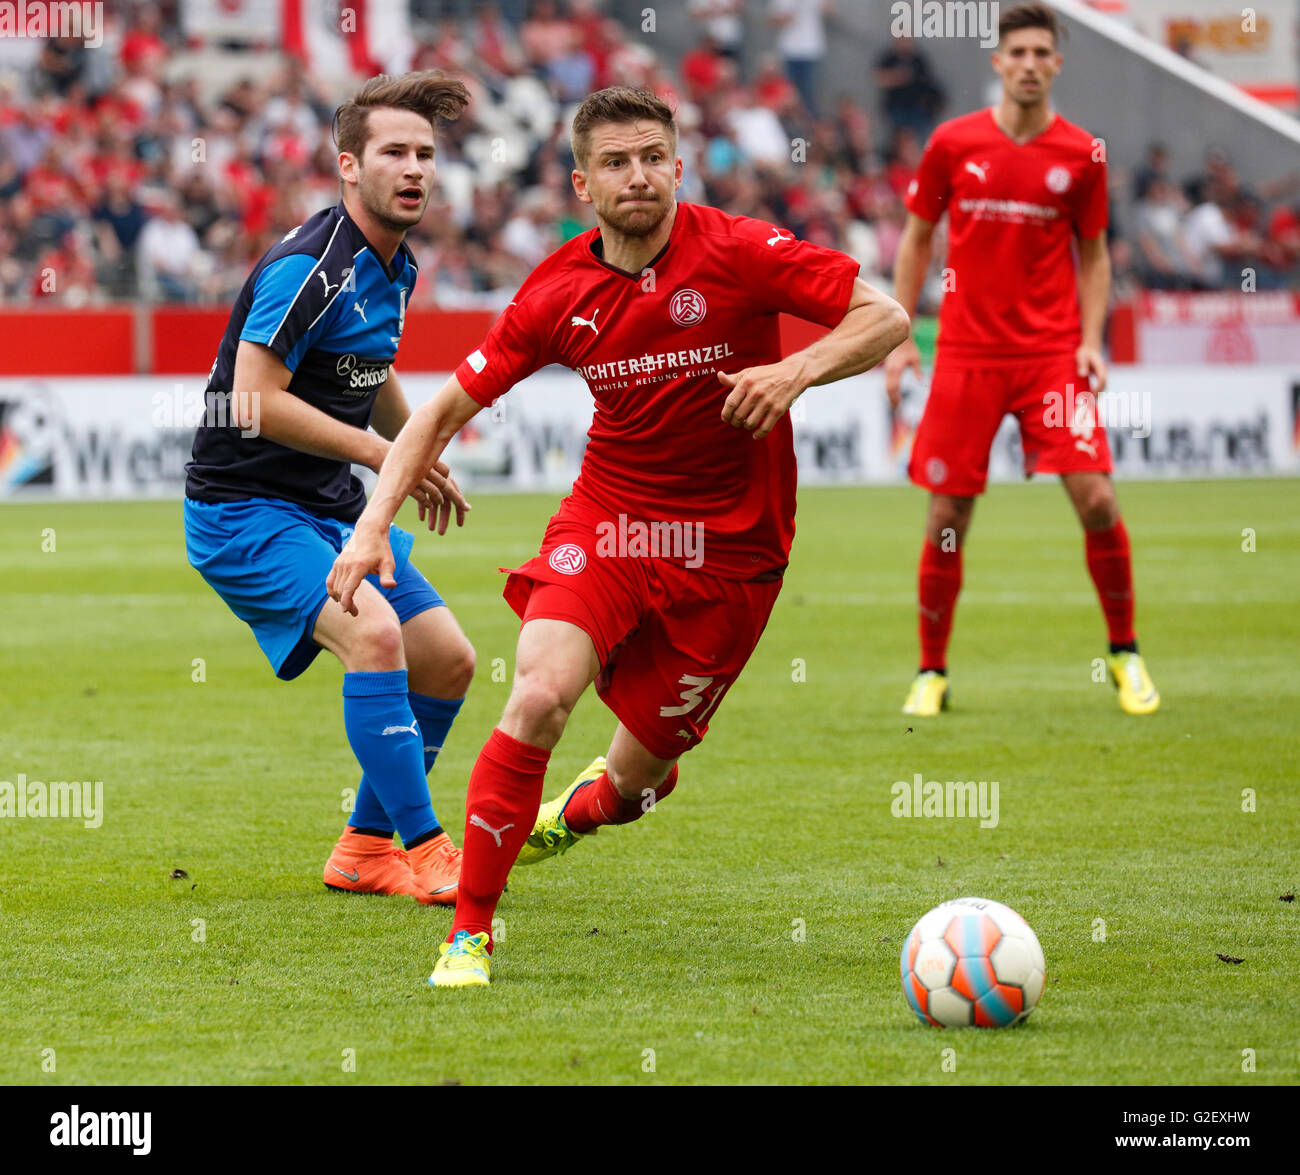 sport fu ball niedrigere rhein cup 2015 2016 finale rot weiss essen vs wuppertaler sv 3 0. Black Bedroom Furniture Sets. Home Design Ideas